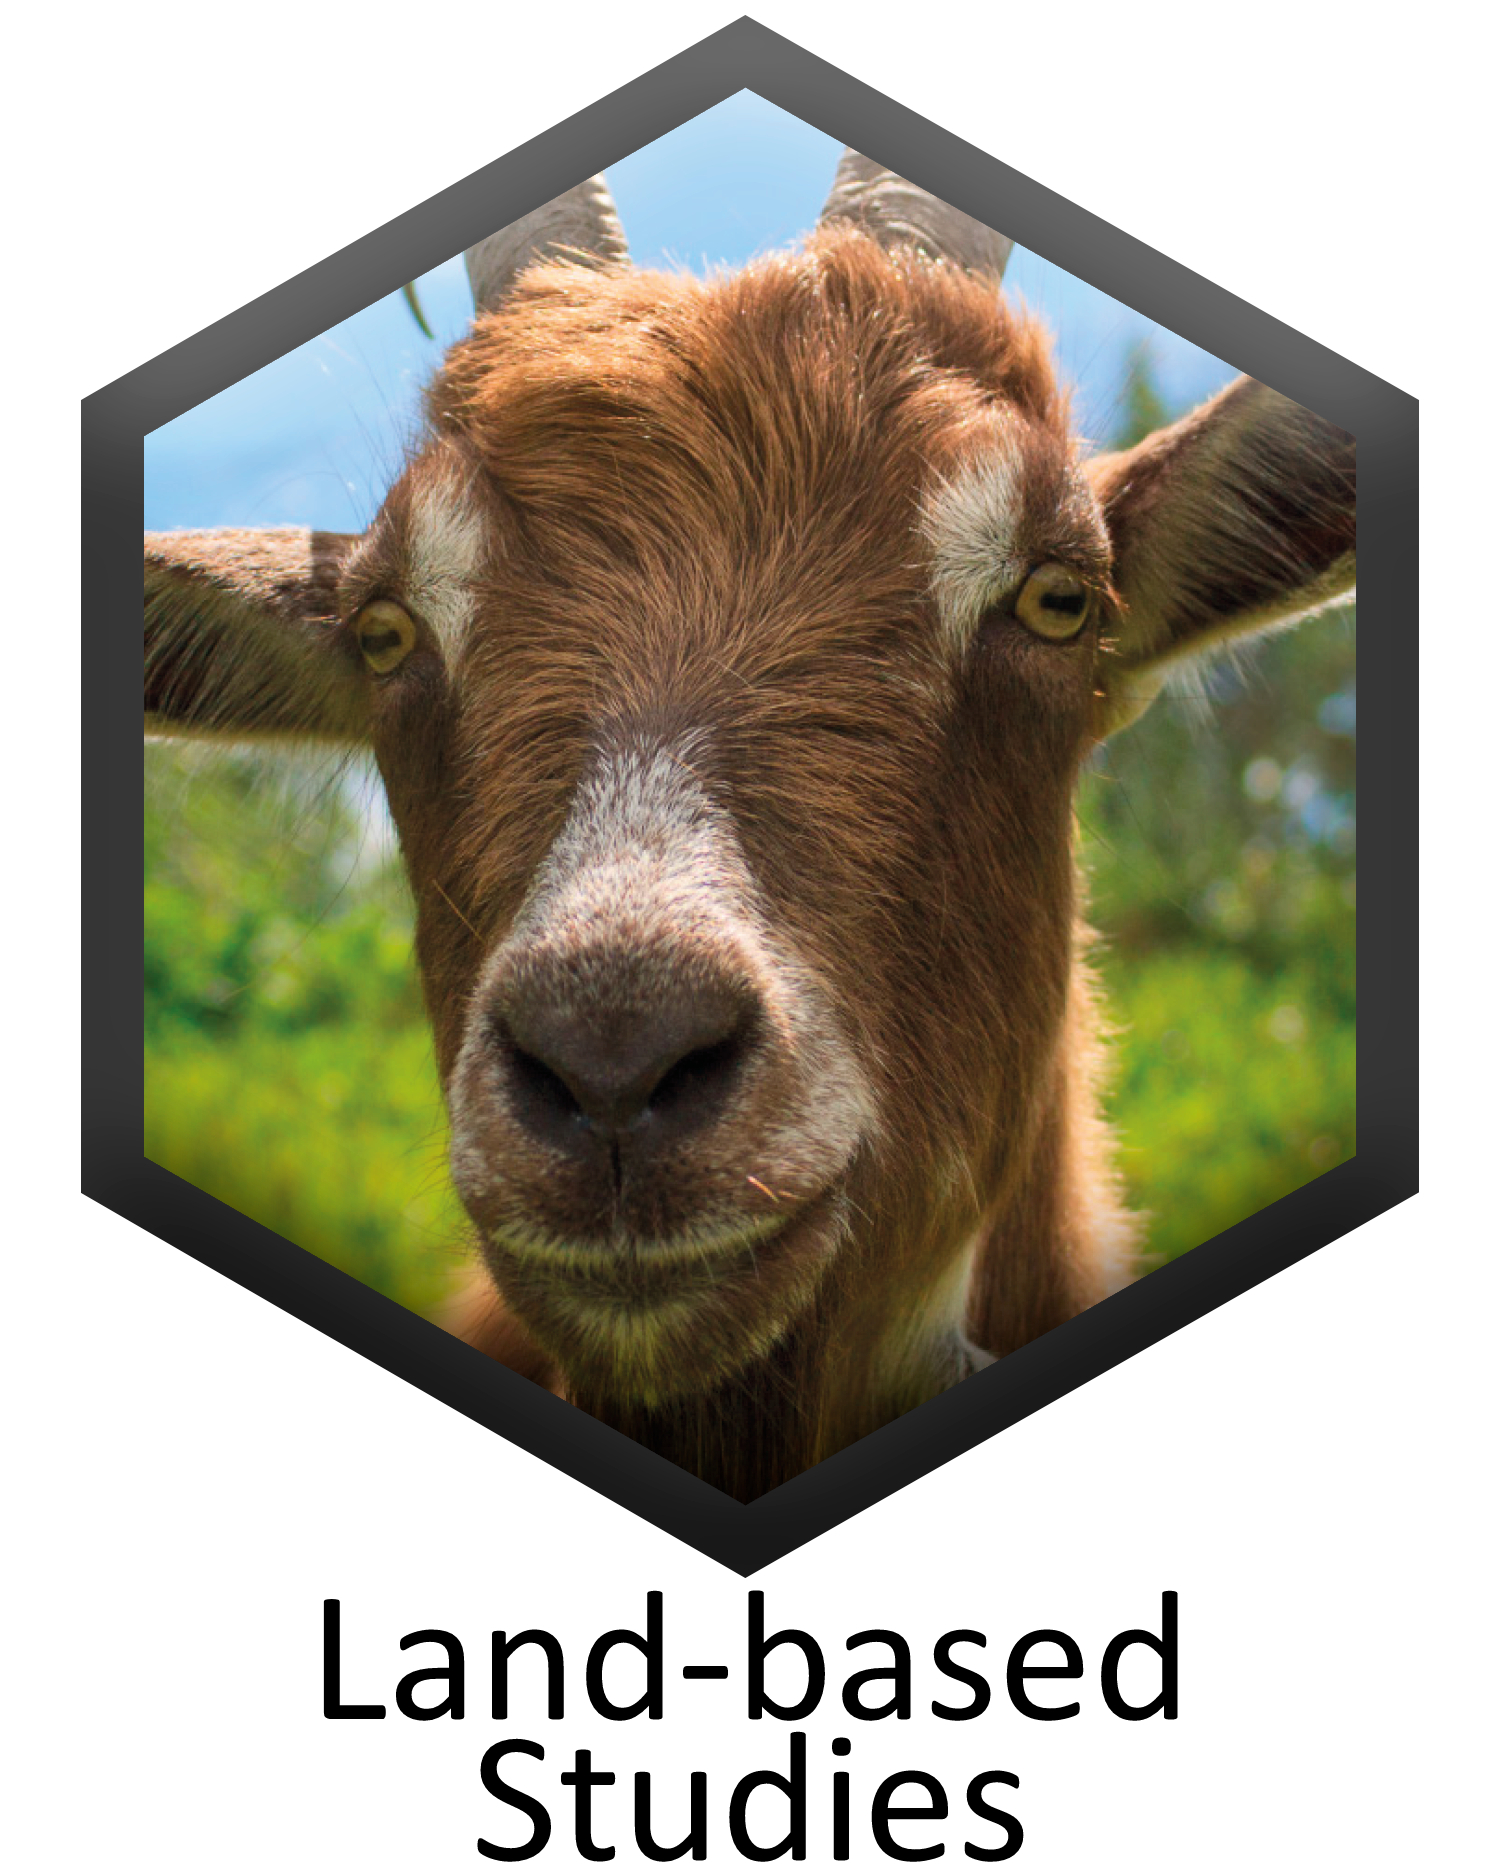 Land-based Studies specification